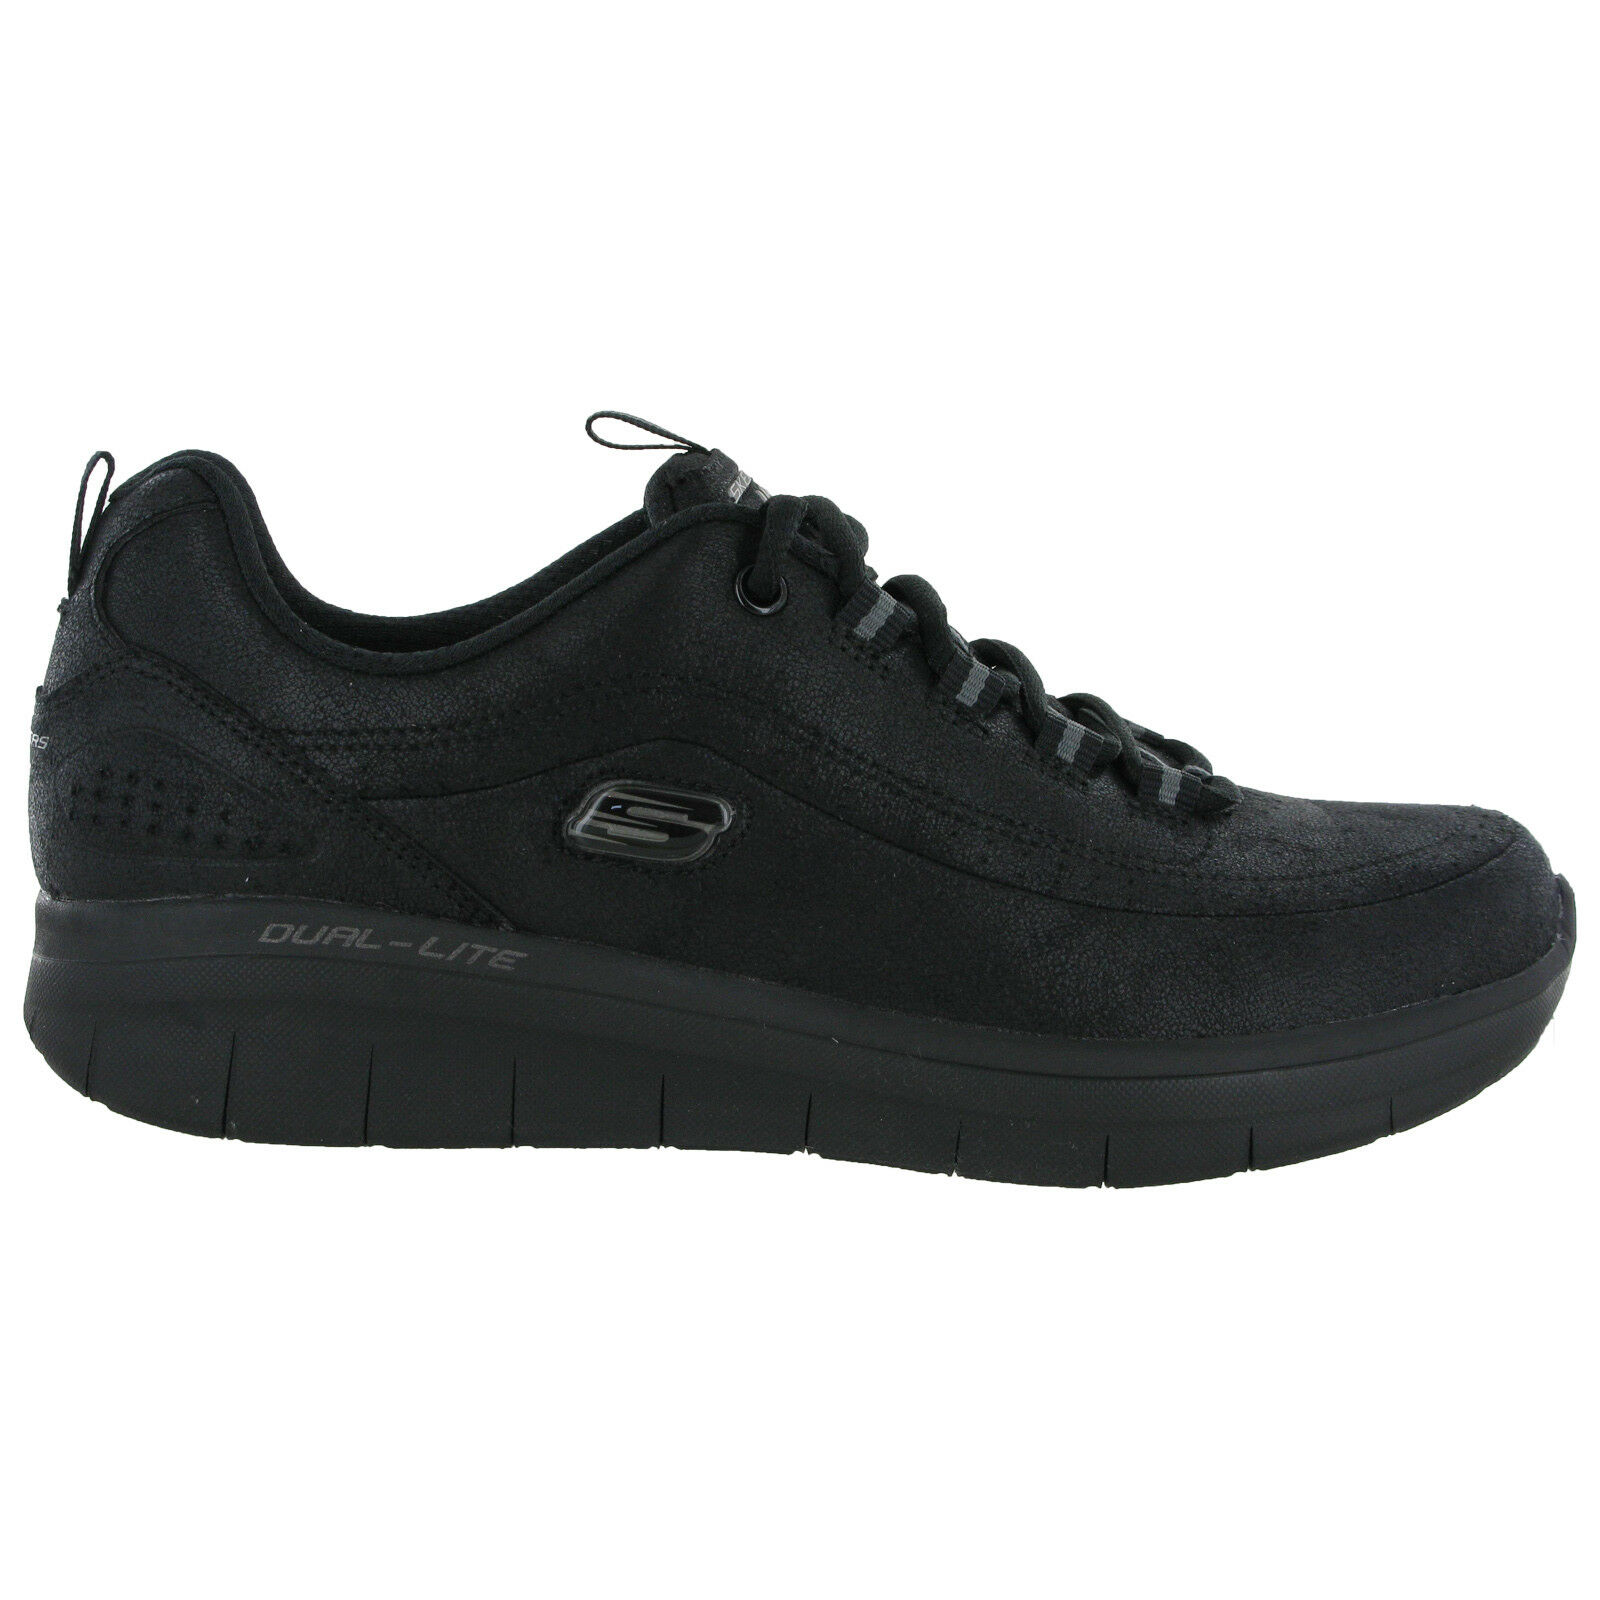 Skechers Synergy Trainers 2.0 - Comfy Up Trainers Synergy 12934 Damenschuhe Memory Foam Sport Schuhes a3fc25